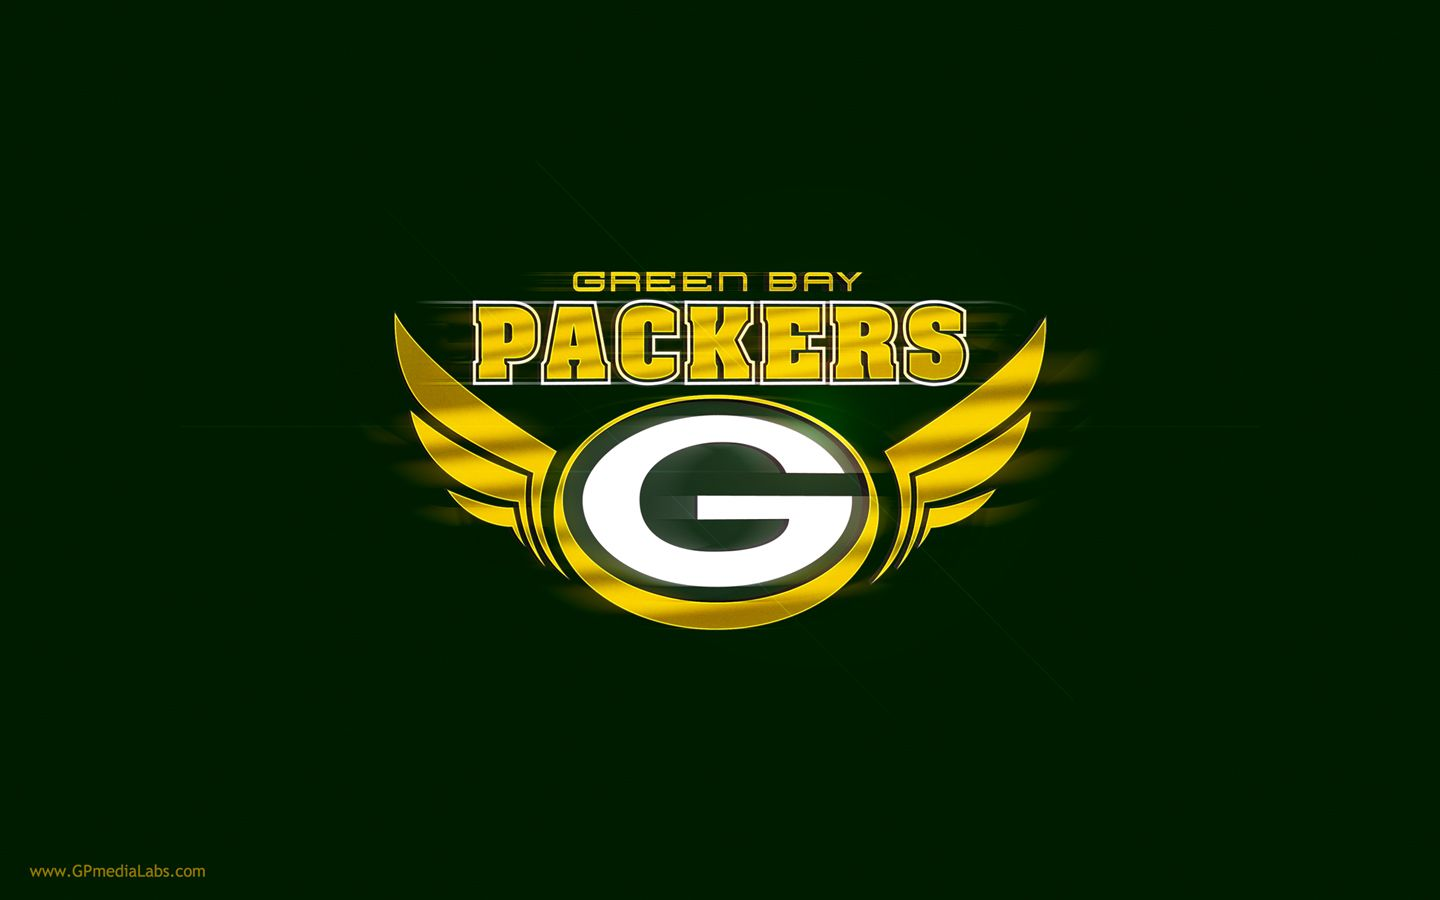 Green Bay Packers Logo Green Bay Packers Desktop Background Wallpapers Packer Green Bay Packers Wallpaper Green Bay Packers Pictures Green Bay Packers Logo